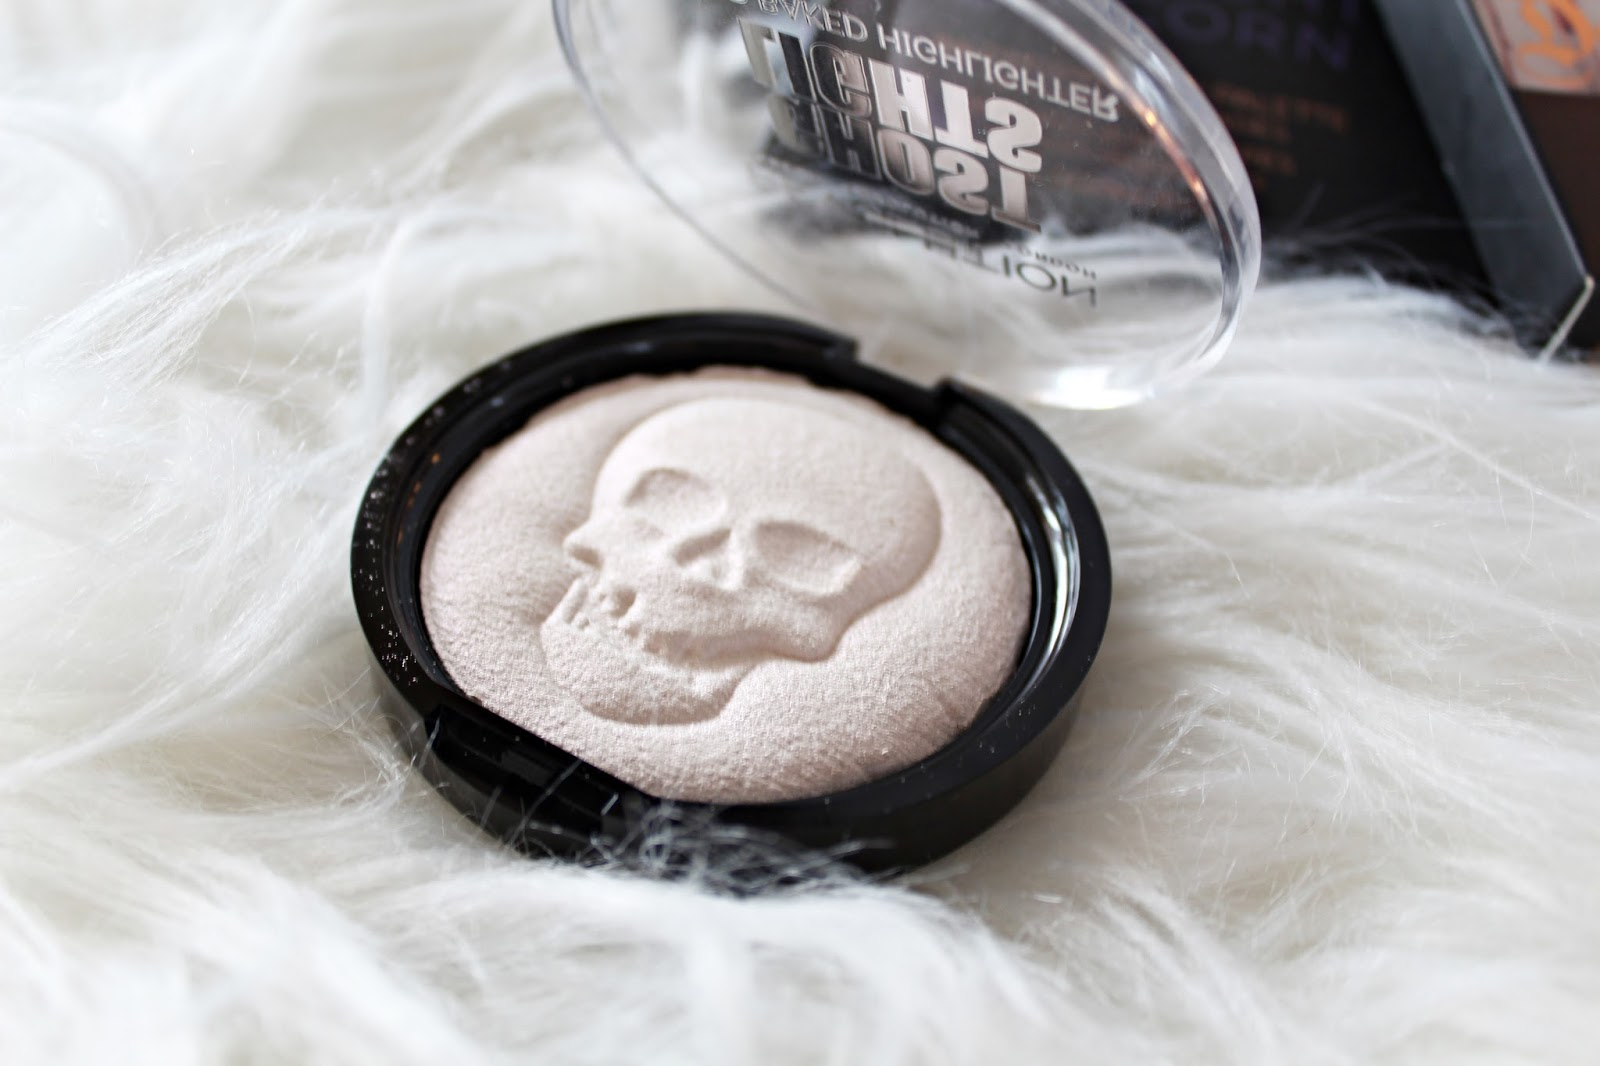 Ghost Lights VIVID baked Highlighter